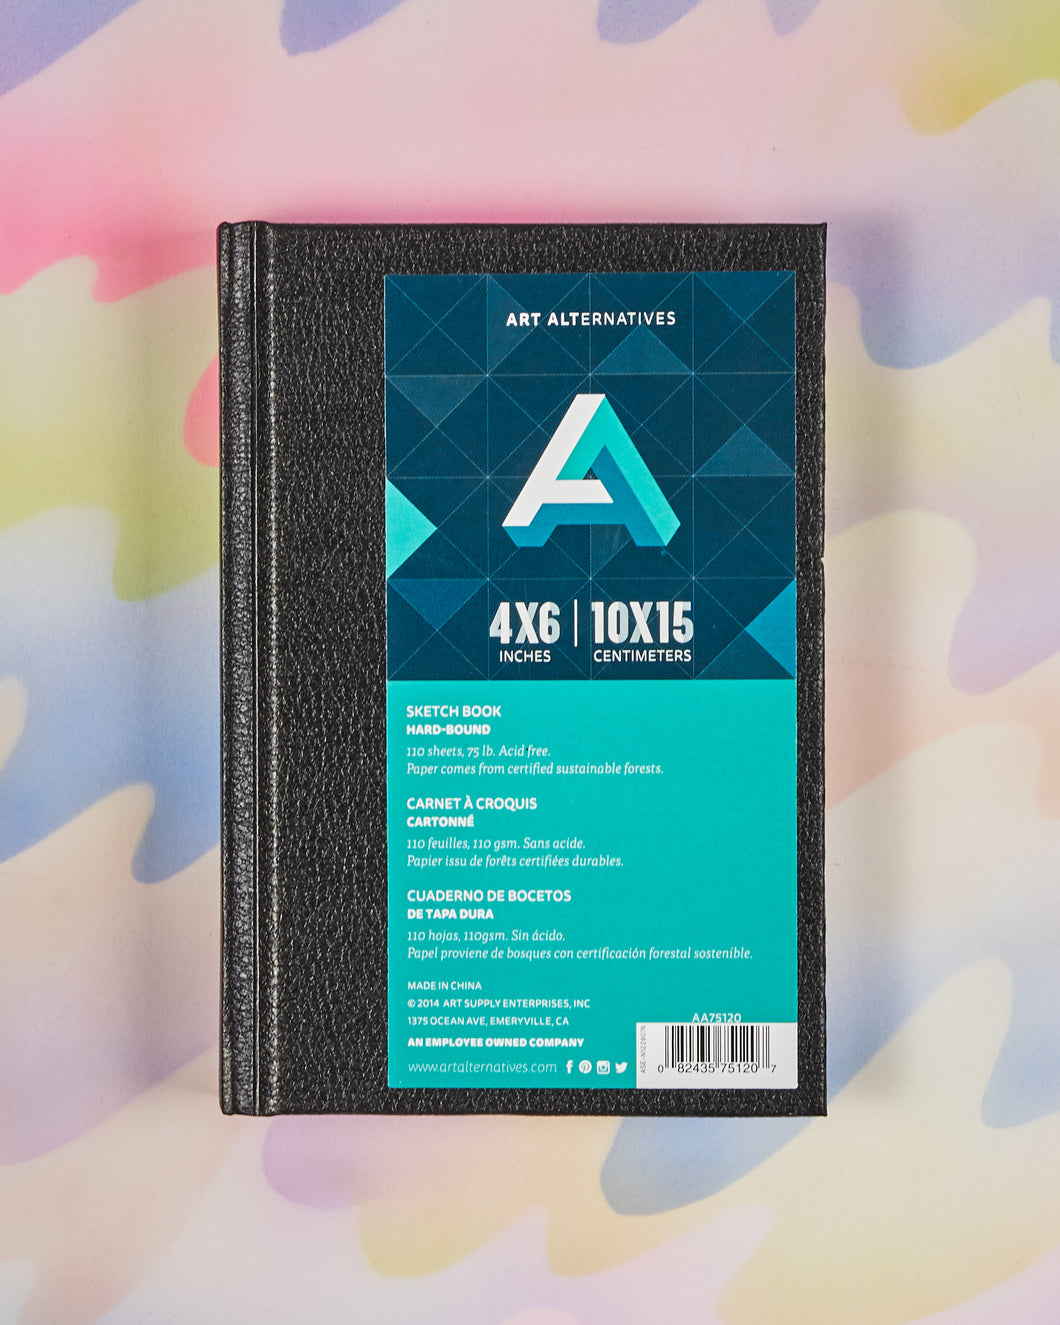 Art Alternatives Hardbound Sketchbook - 4x6